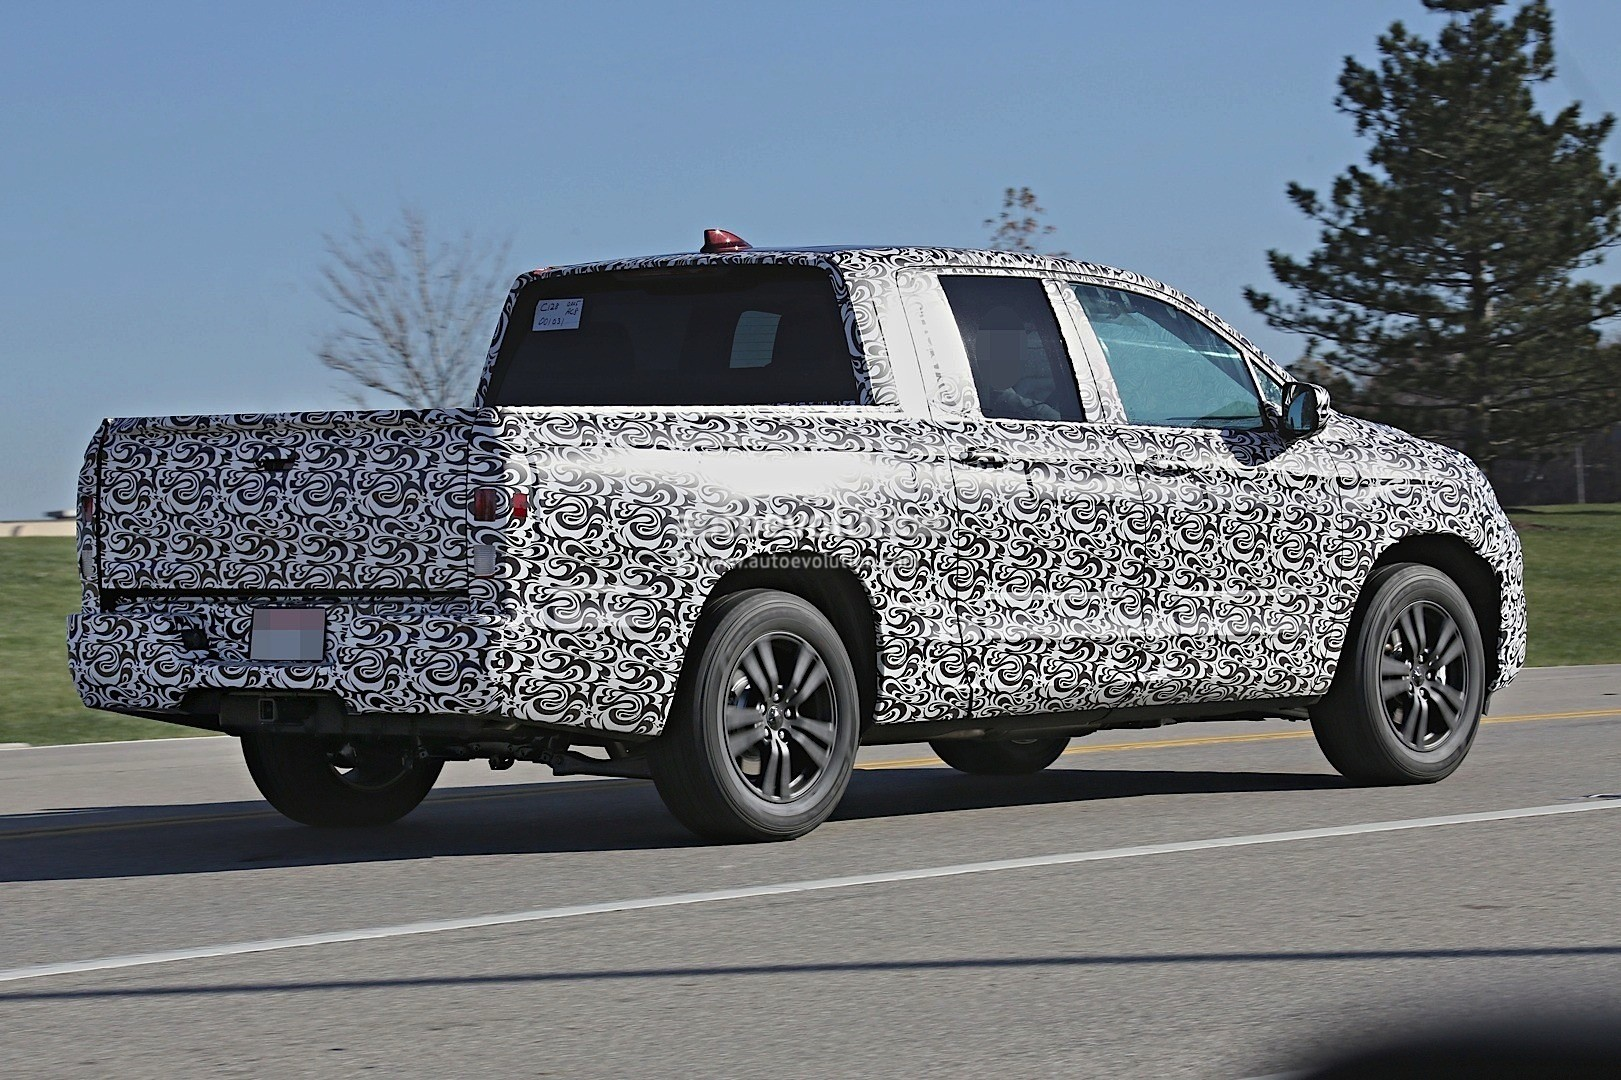 Awesome 2017 Honda Ridgeline Silhouette Revealed In Latest